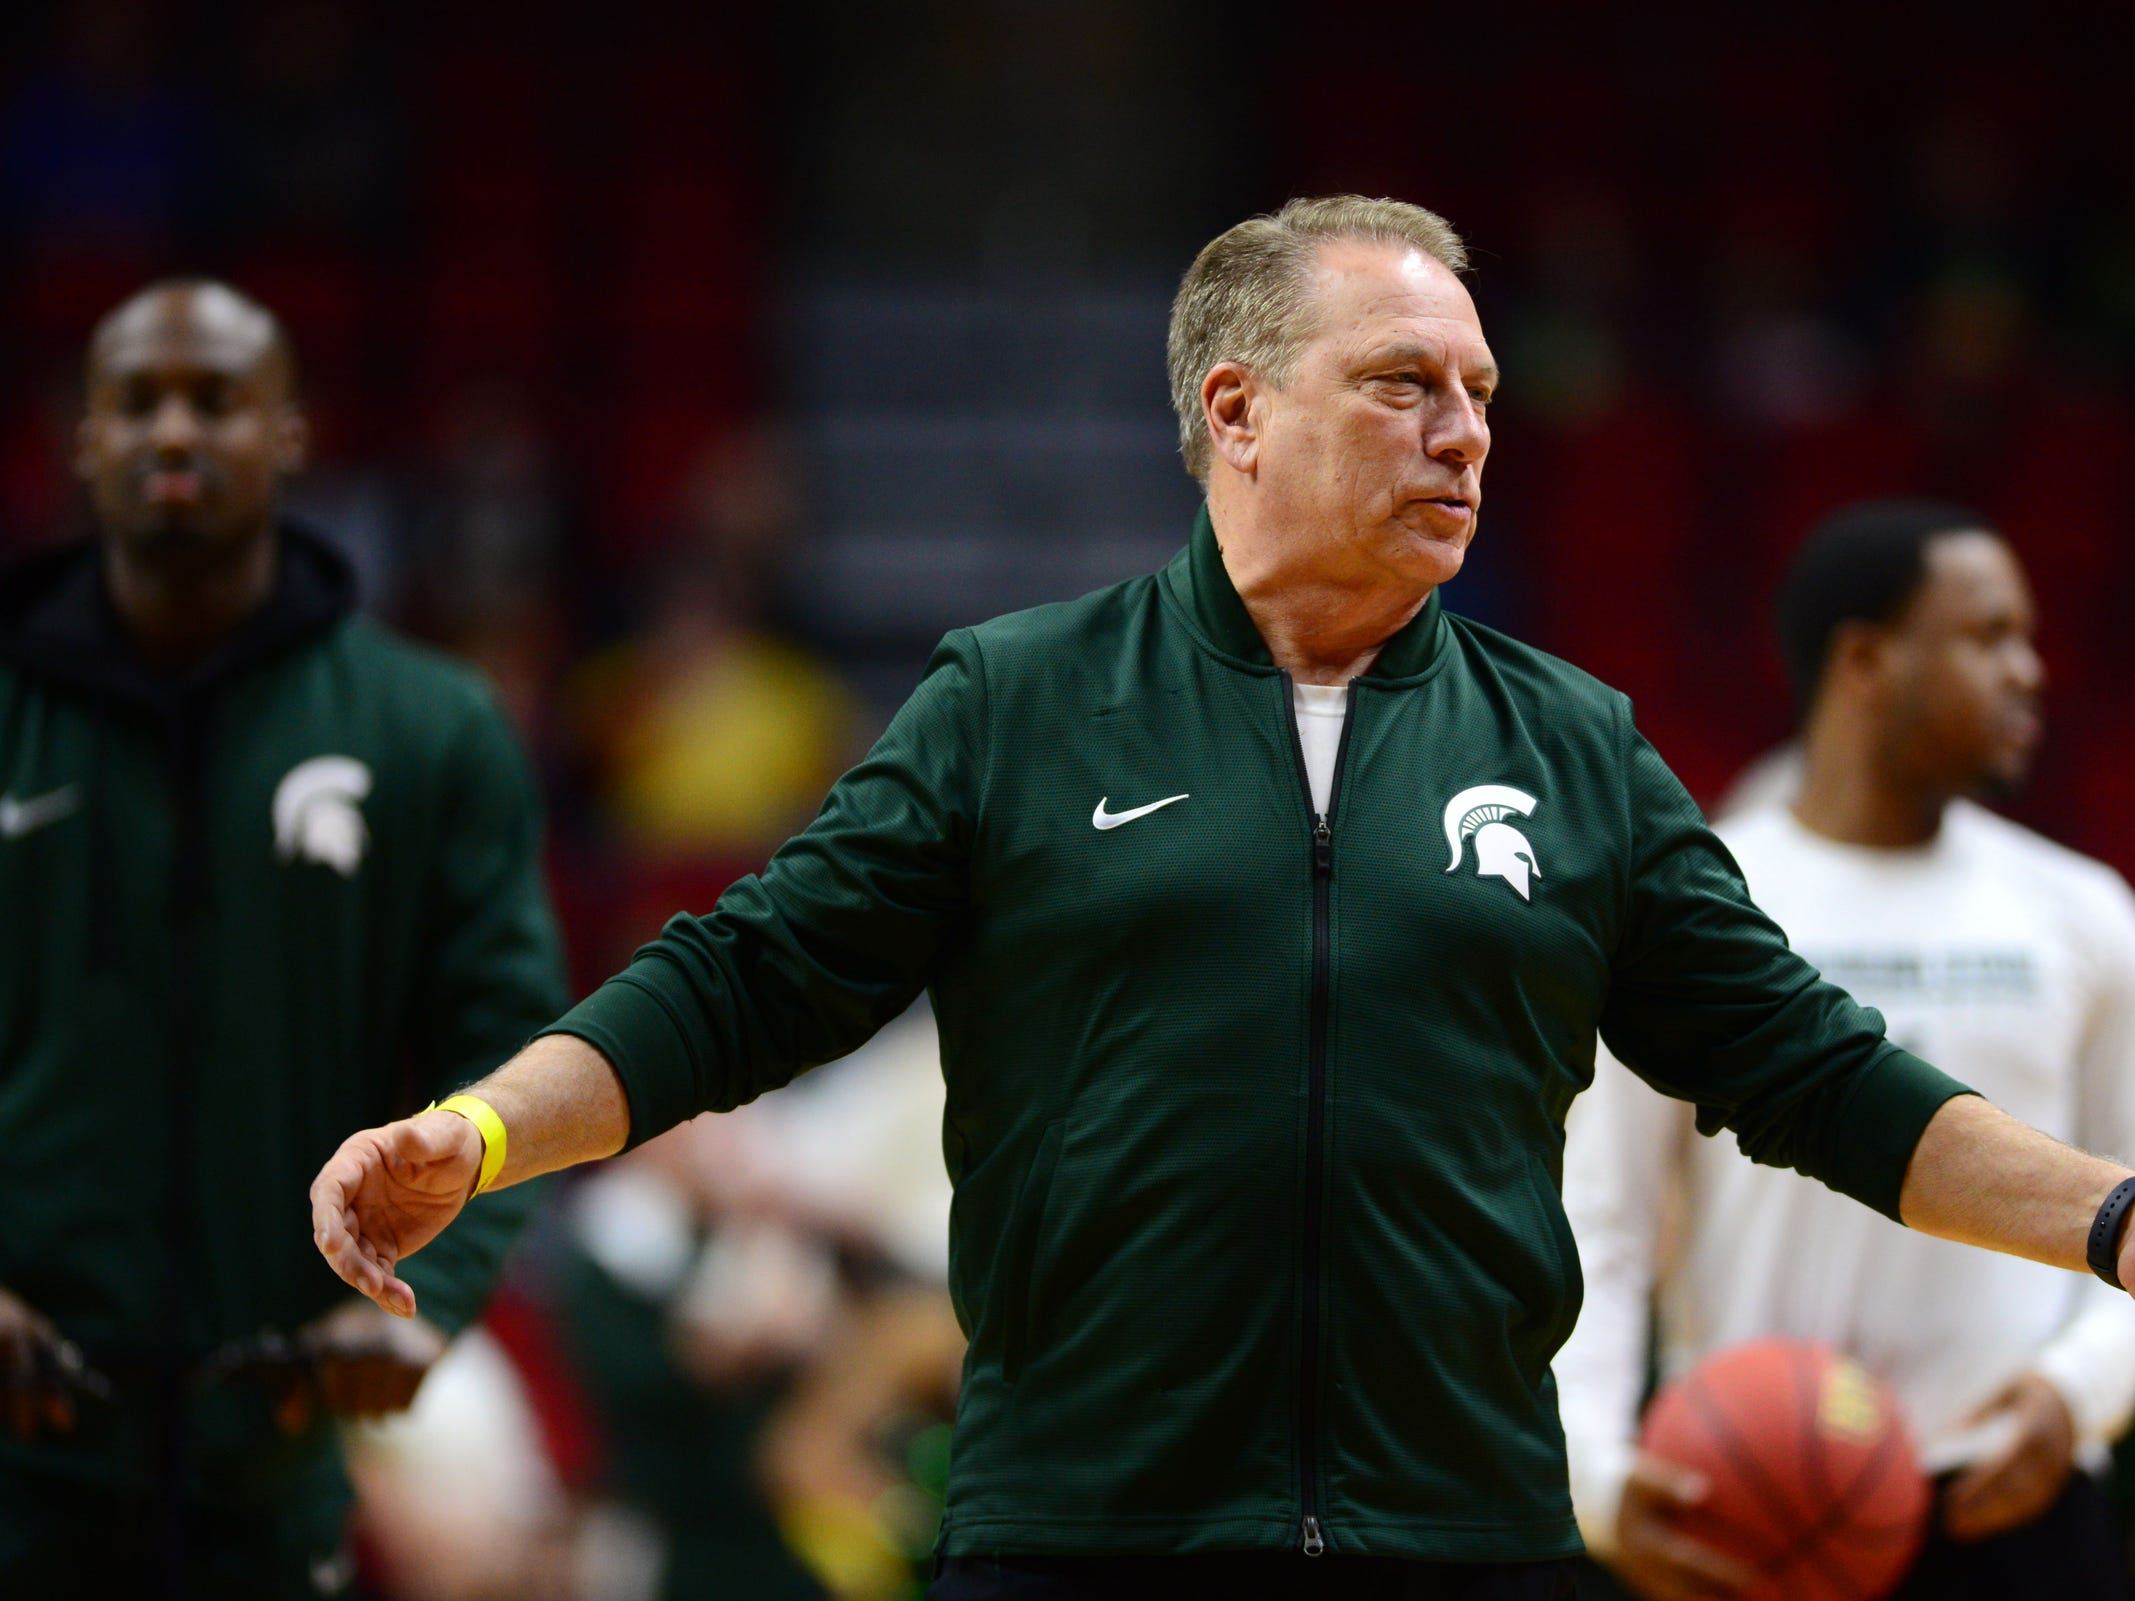 Mar 20, 2019; Des Moines, IA, USA; Michigan State Spartans head coach Tom Izzo during practice before the first round of the 2019 NCAA Tournament at Wells Fargo Arena. Mandatory Credit: Steven Branscombe-USA TODAY Sports